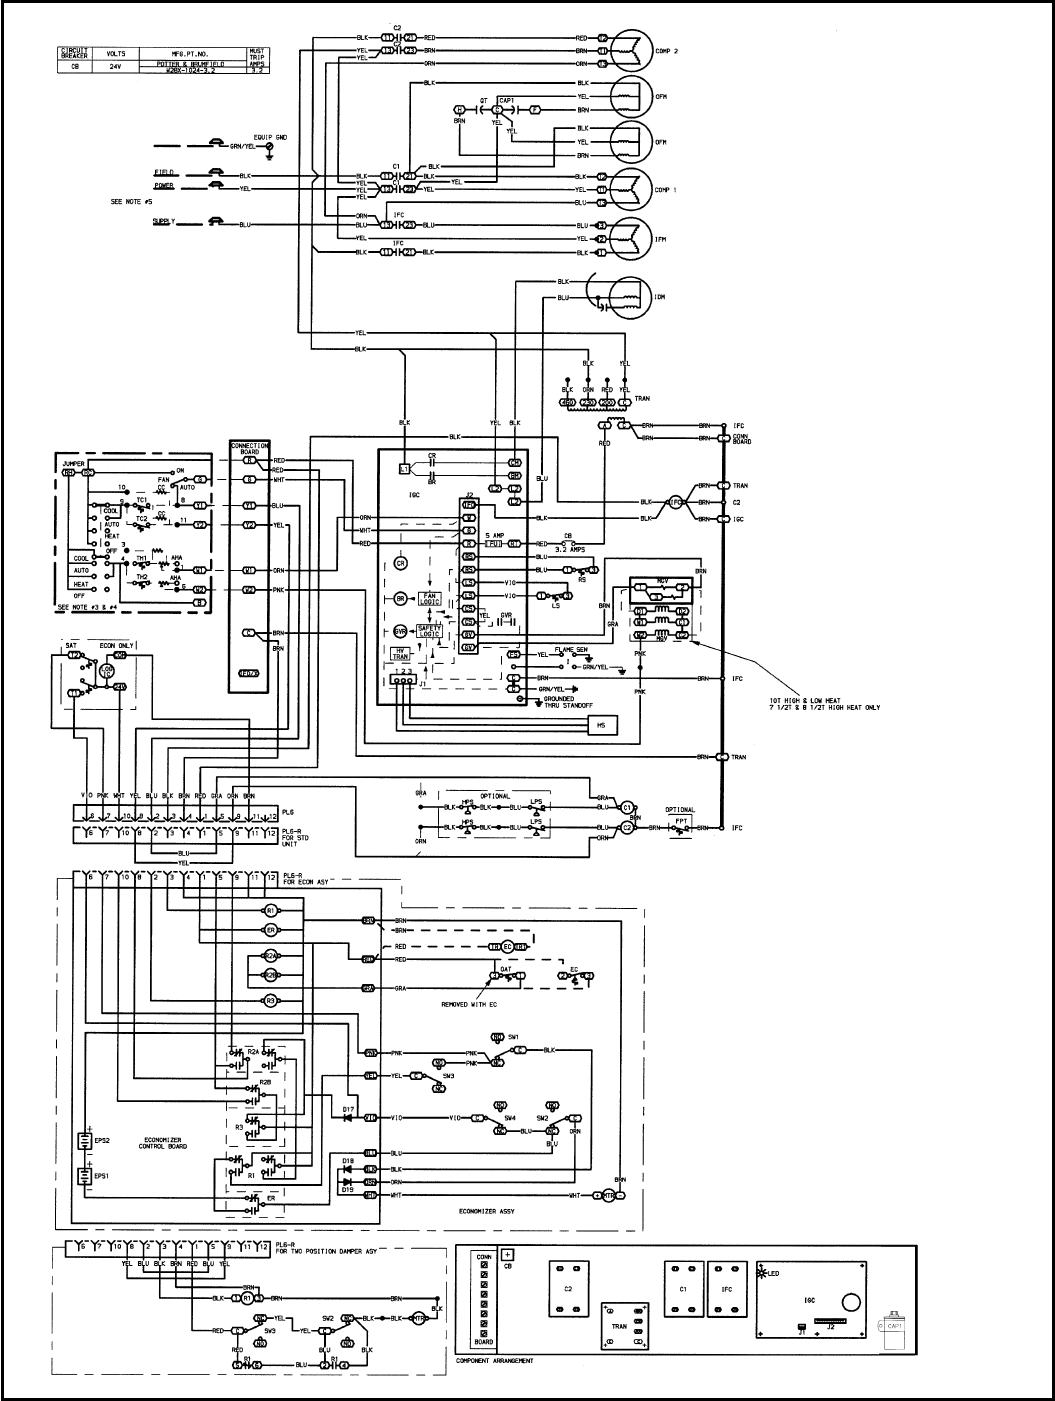 Bryant 580d Typical Wiring Schematic 580d036 150